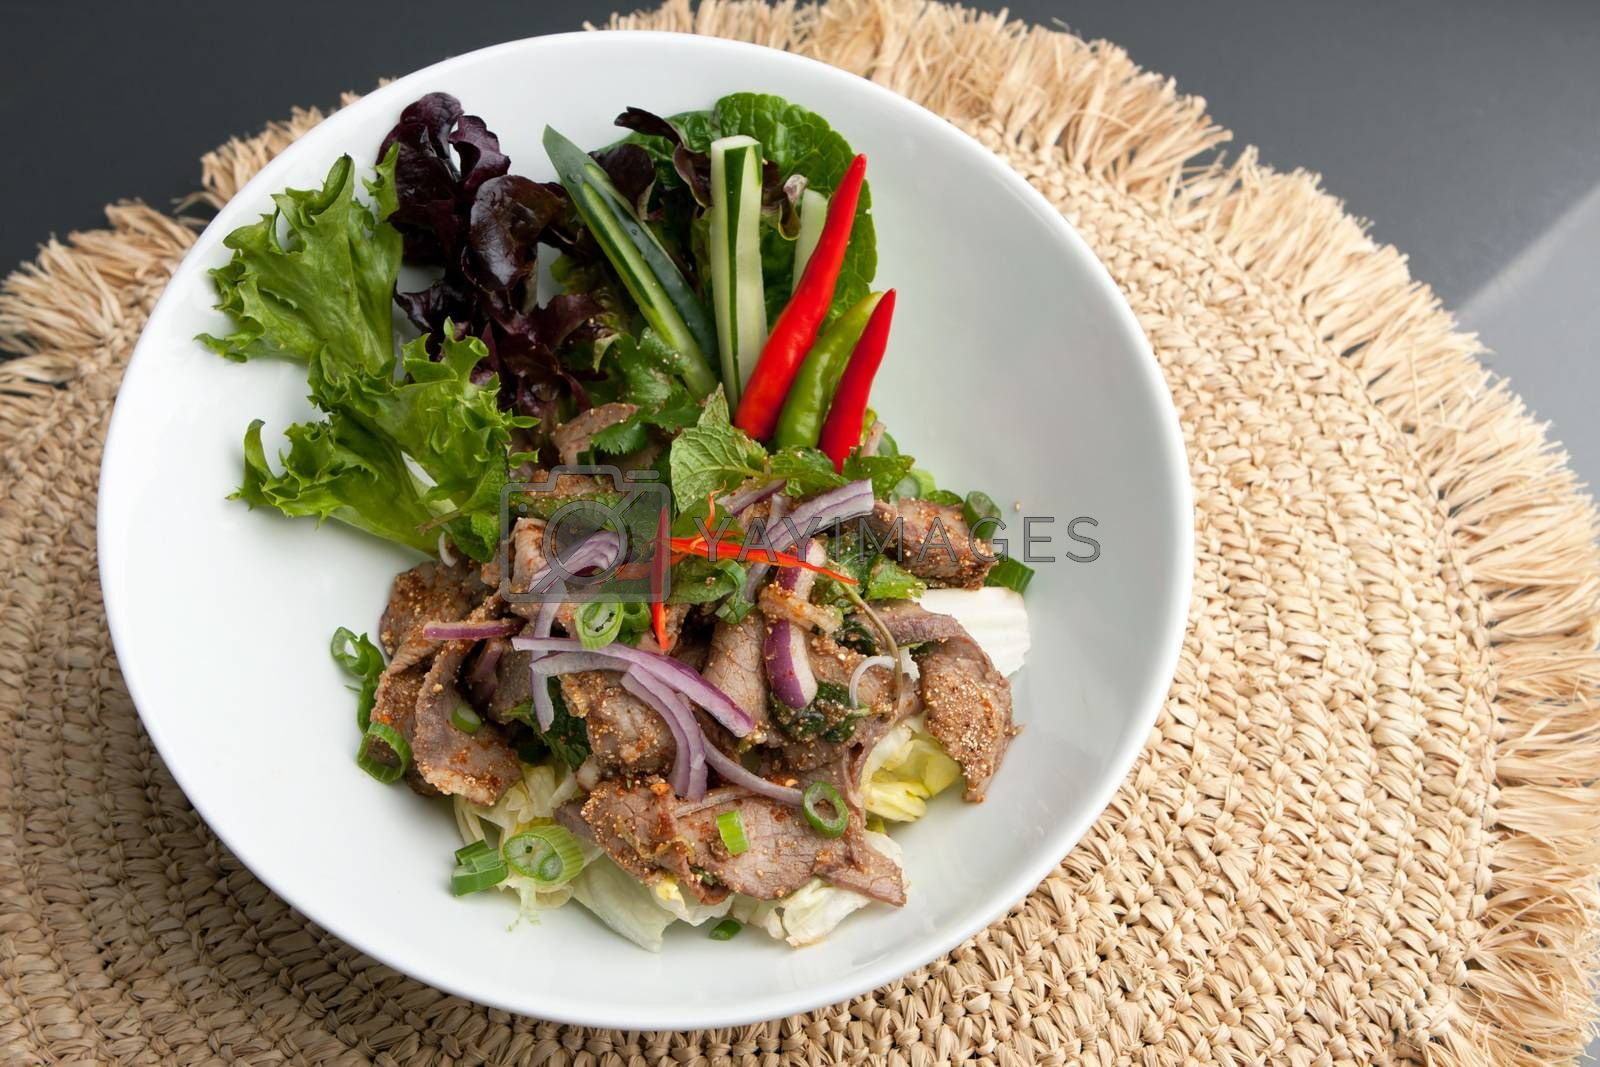 Asian style Thai salad with steak and fresh vegetables.